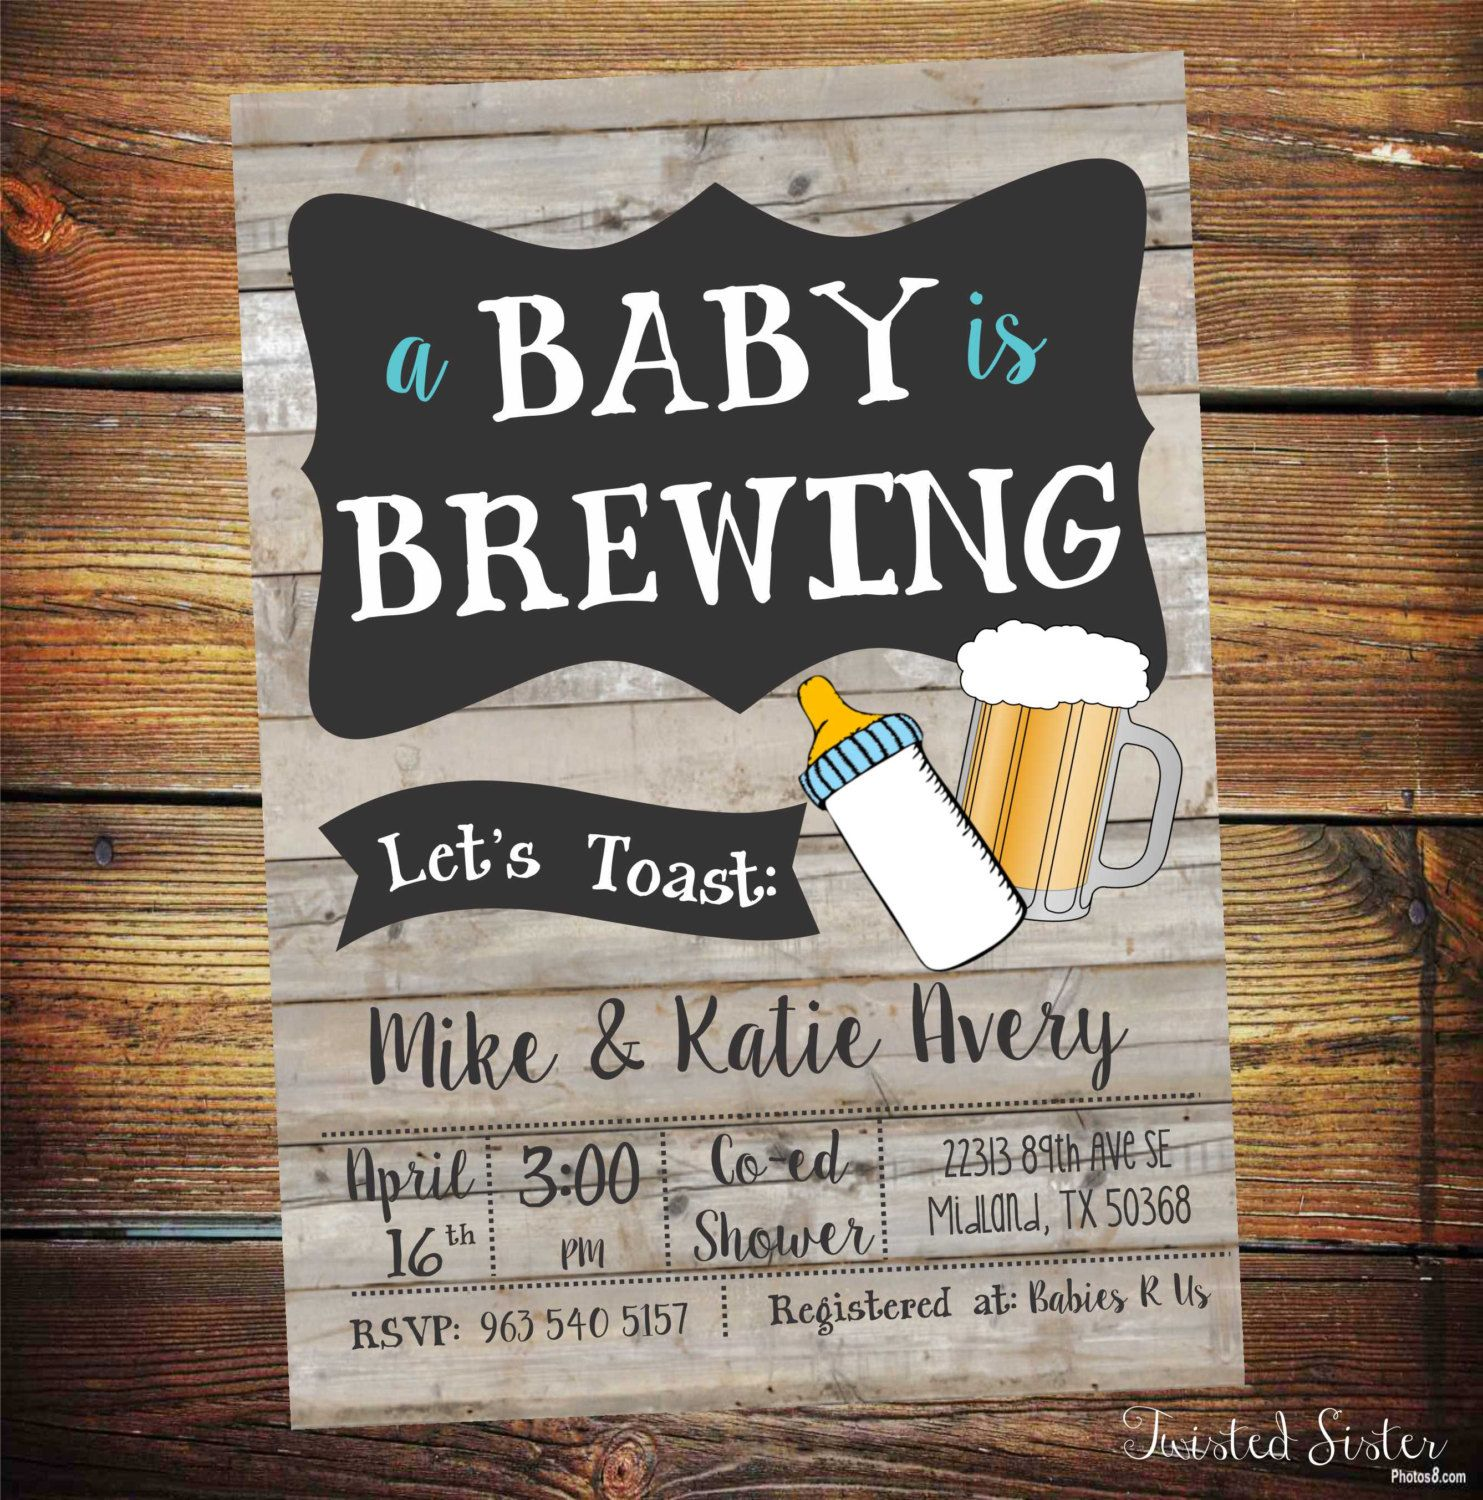 A baby is brewing invitation beer baby shower invitation beer baby a baby is brewing invitation beer baby shower invitation beer baby shower co ed baby shower invitation co ed baby shower invite filmwisefo